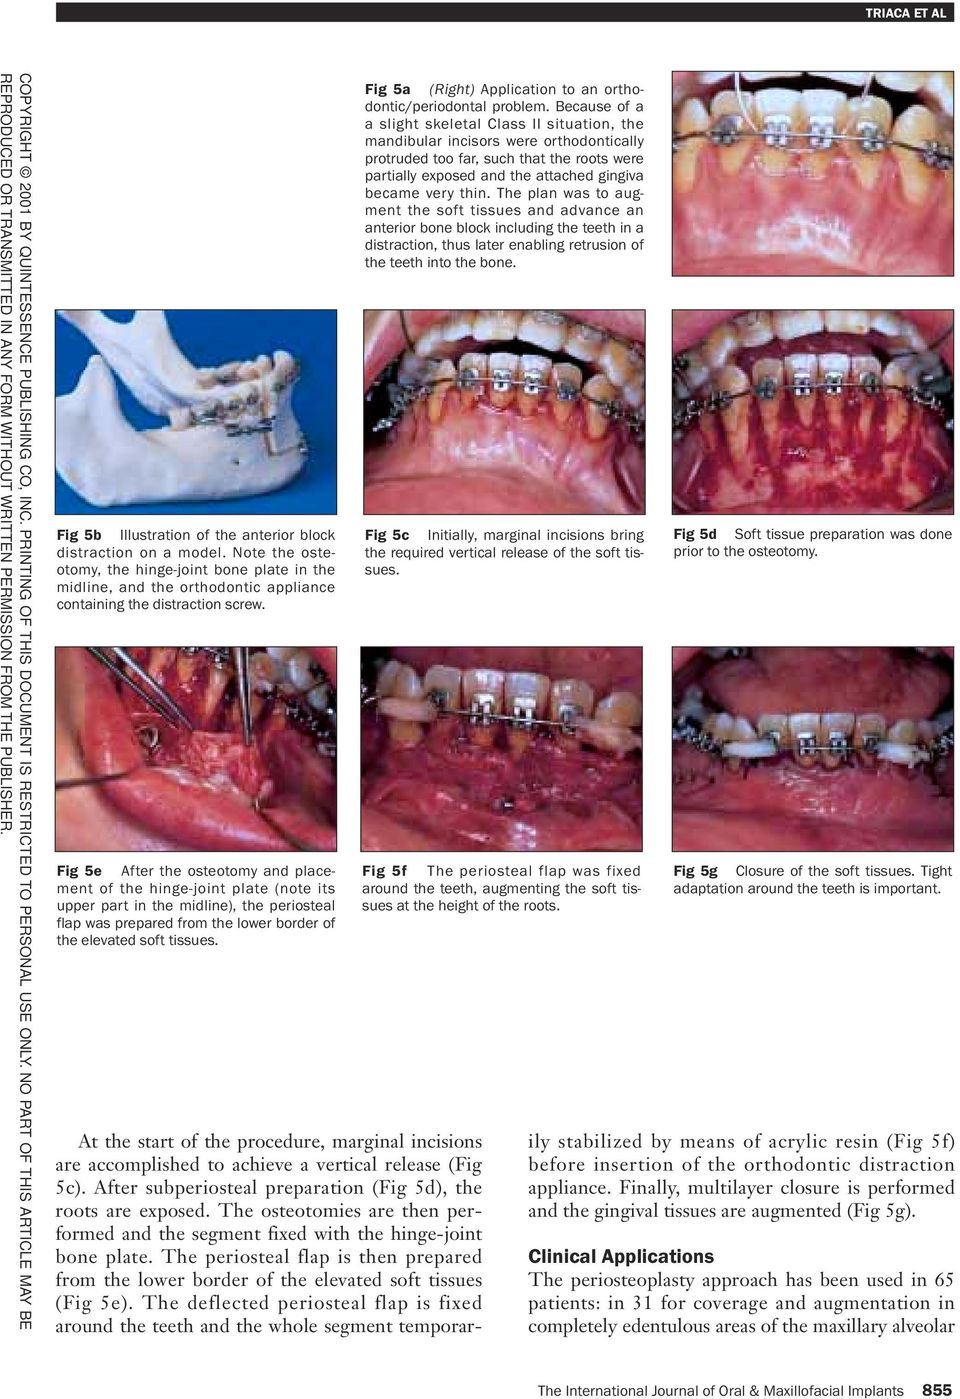 Fig 5a (Right) Application to an orthodontic/periodontal problem.